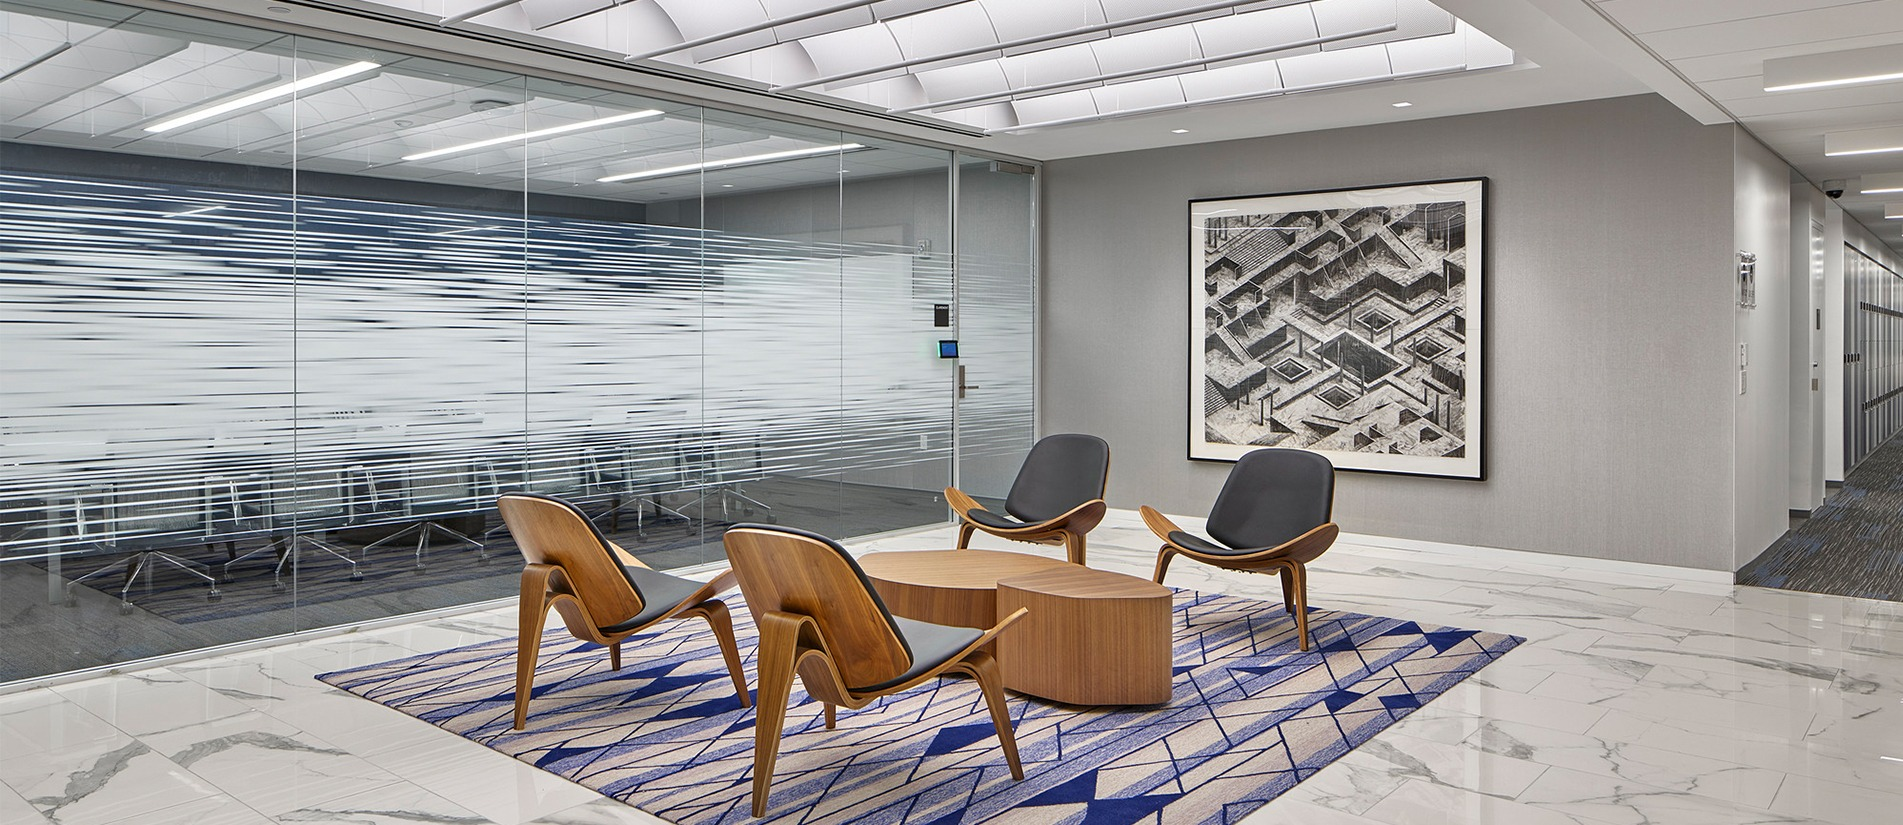 Transwall One-LP glass office wall panels create an open workspace.